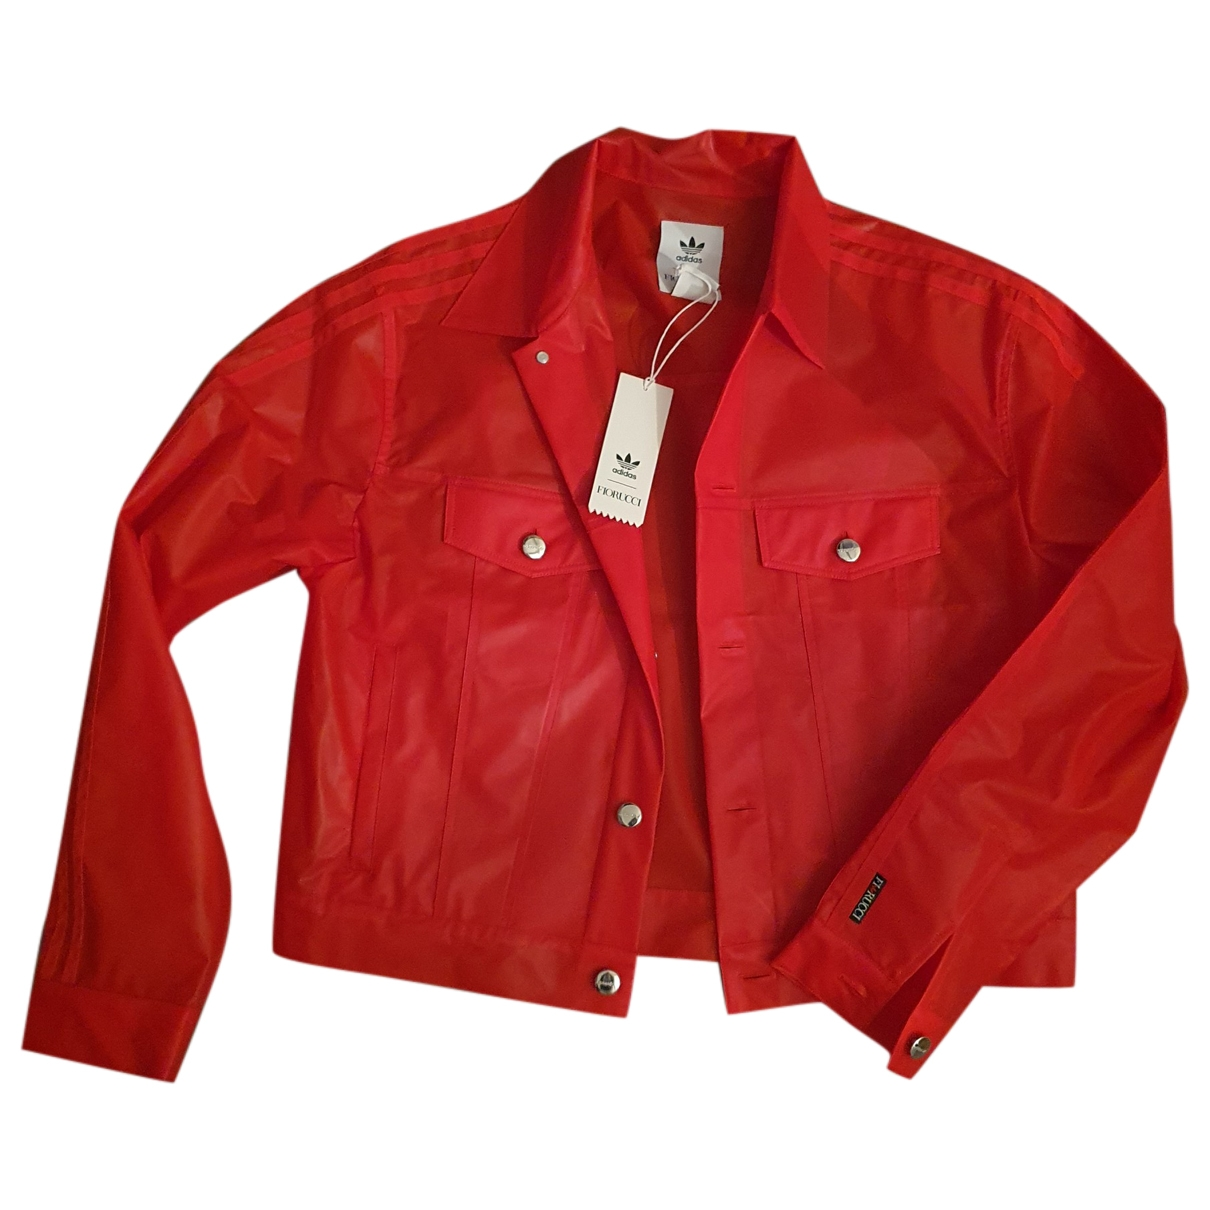 Adidas \N Red Leather jacket for Women 36 FR